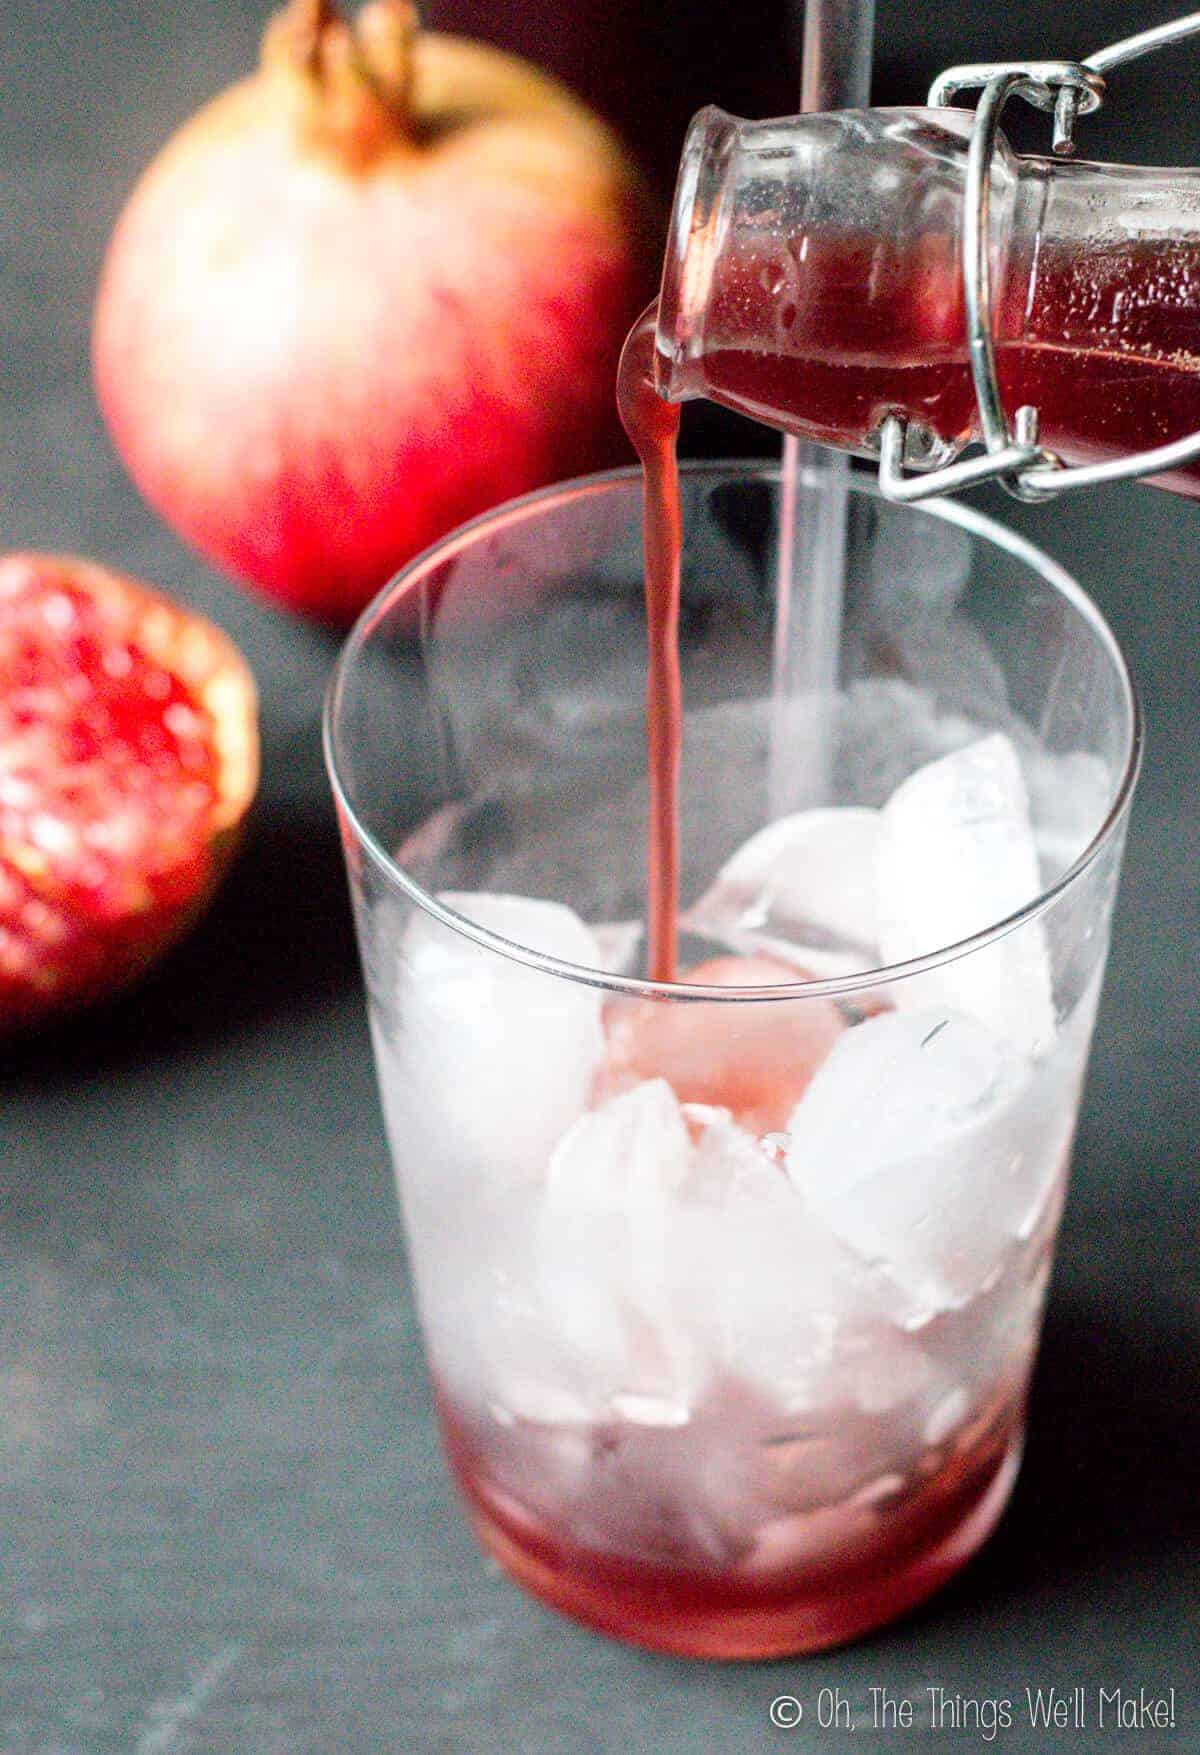 Pouring homemade grenadine into a glass with ice.